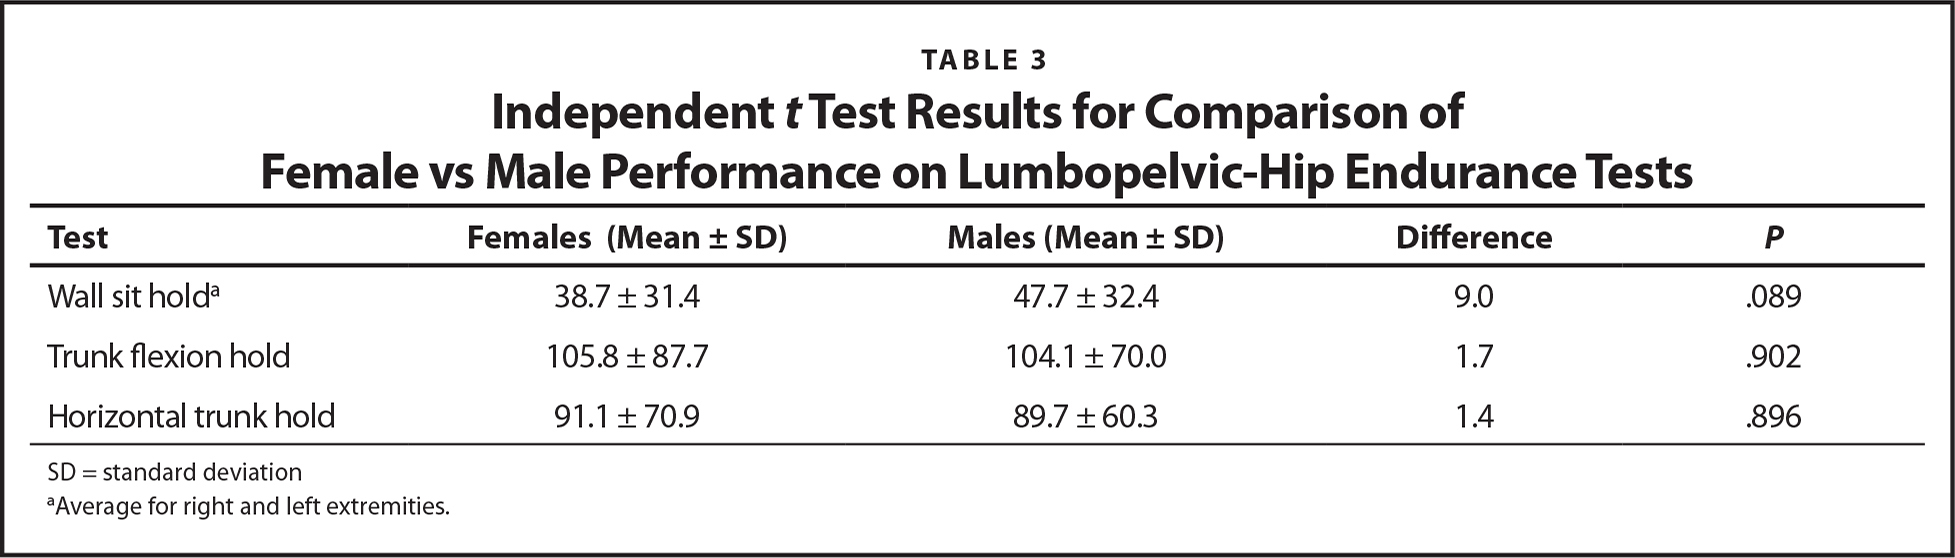 Independent t Test Results for Comparison of Female vs Male Performance on Lumbopelvic-Hip Endurance Tests